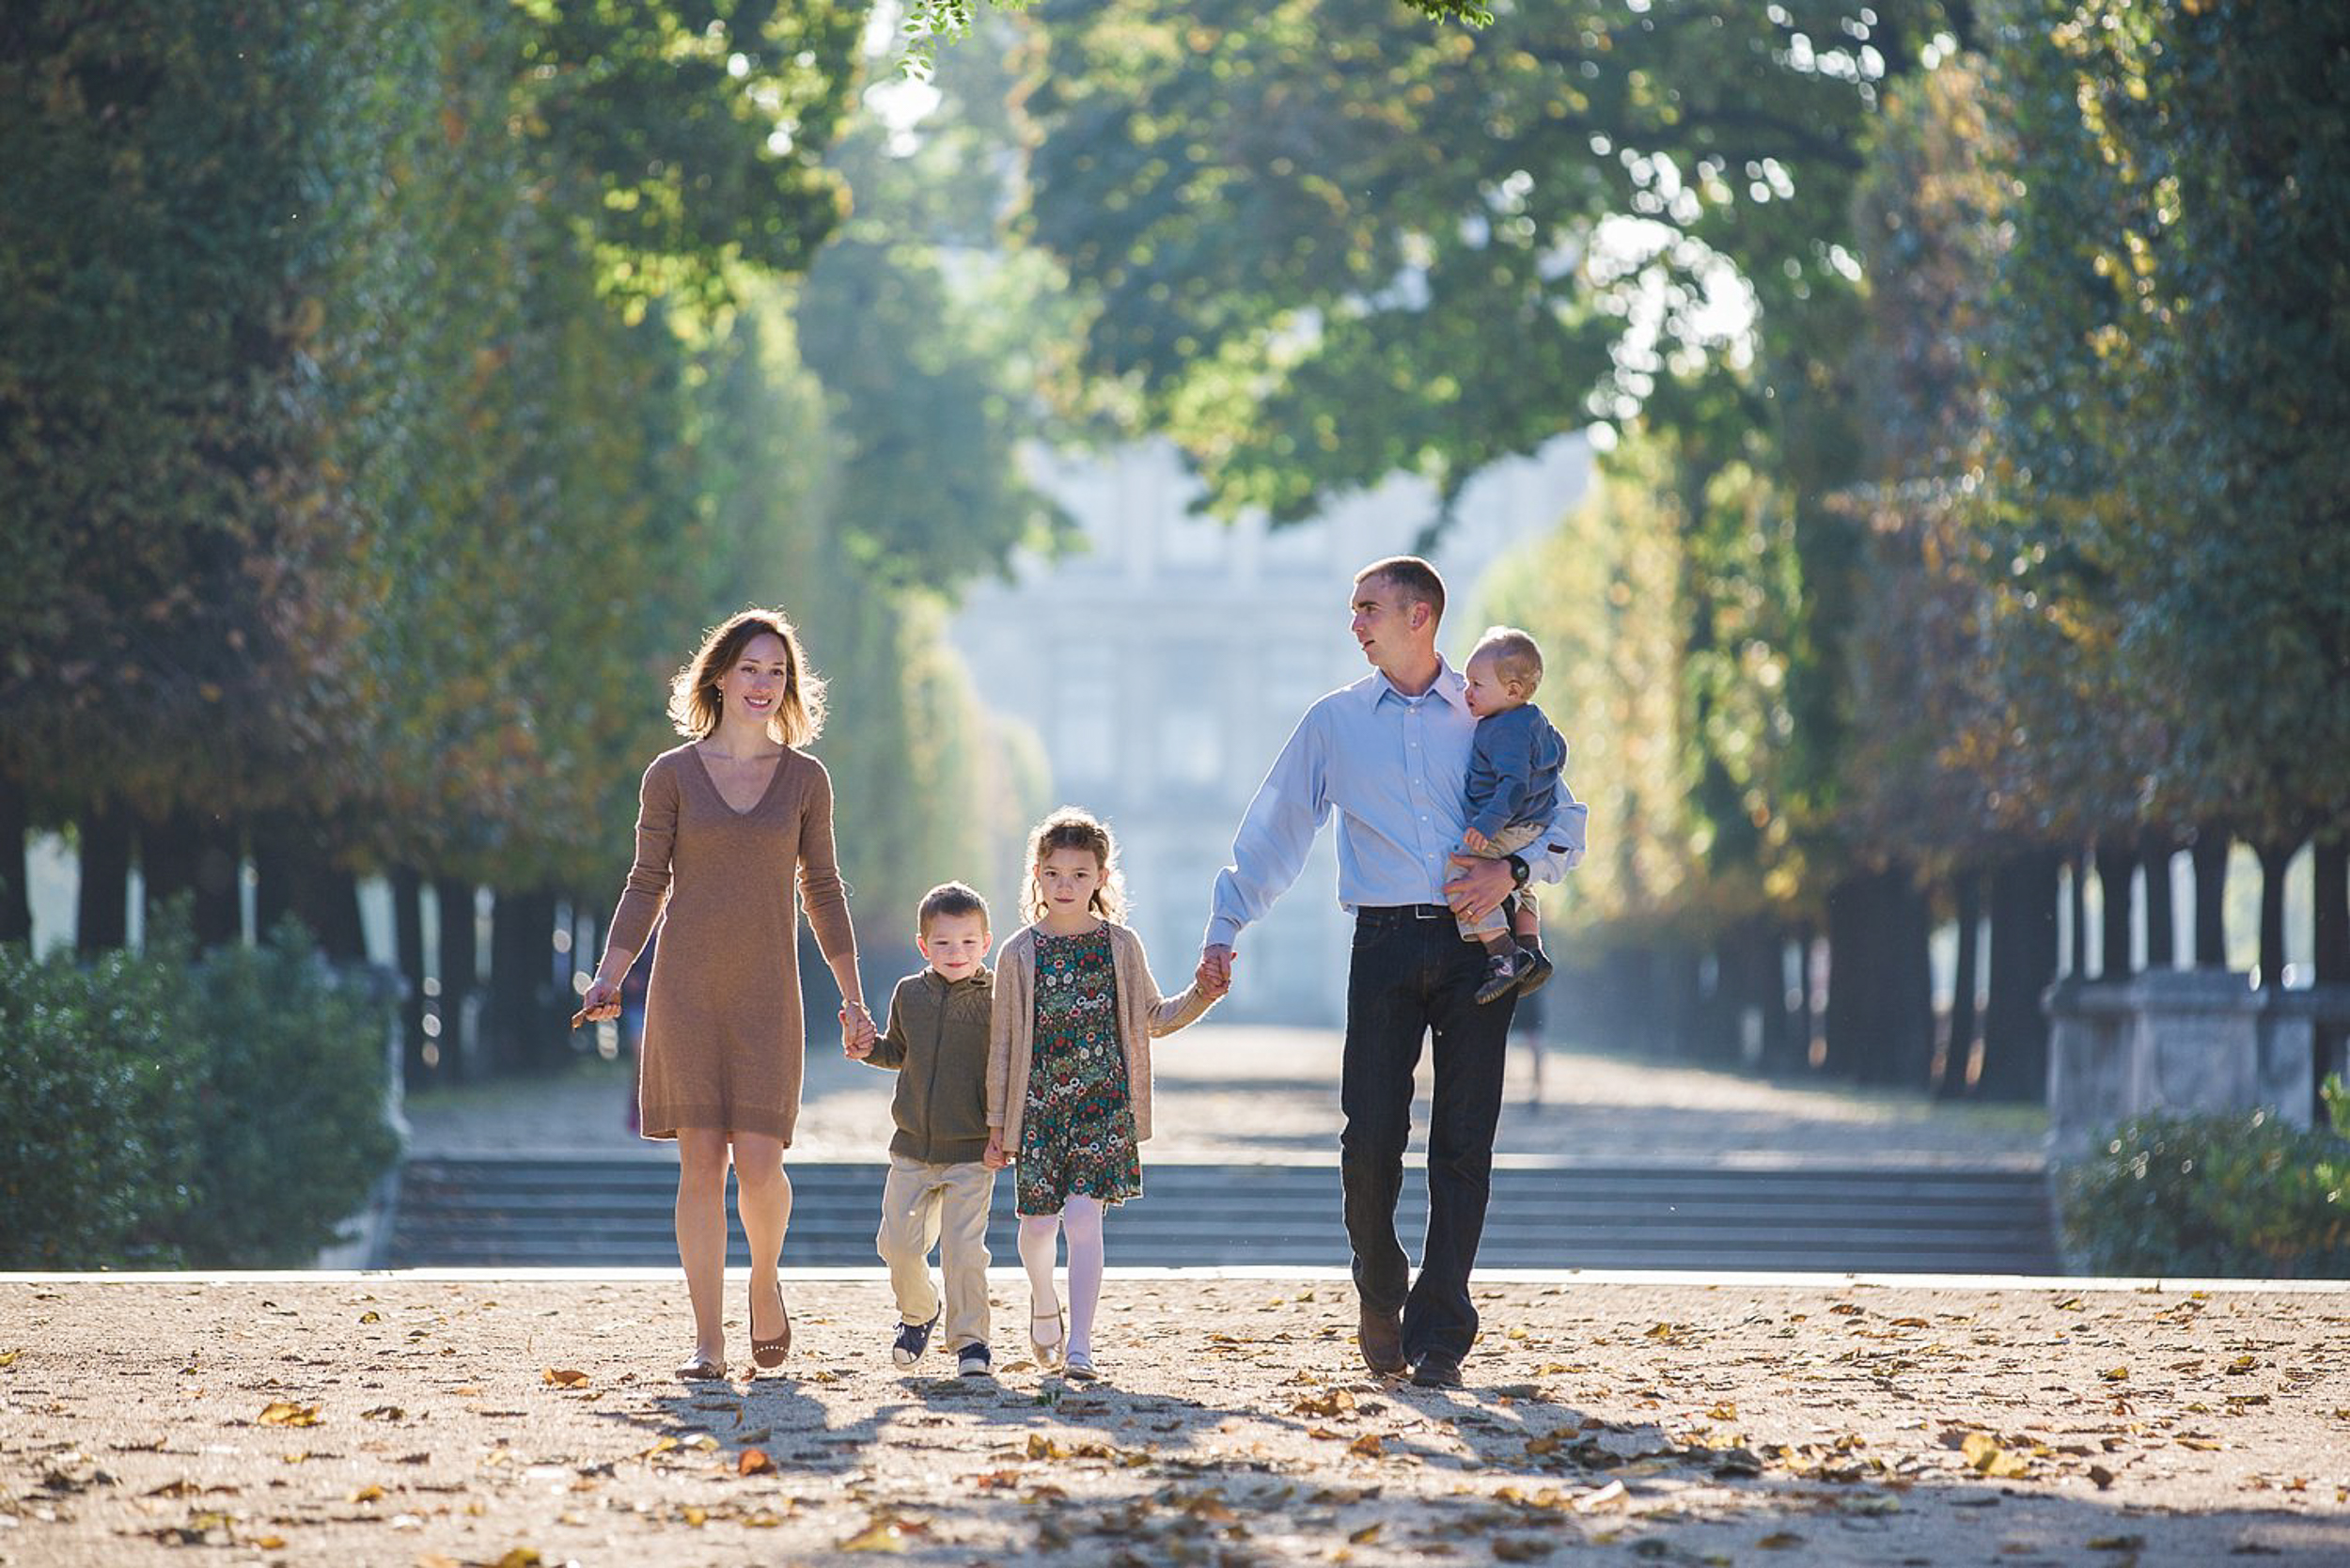 paris-family-photographer-15.jpg